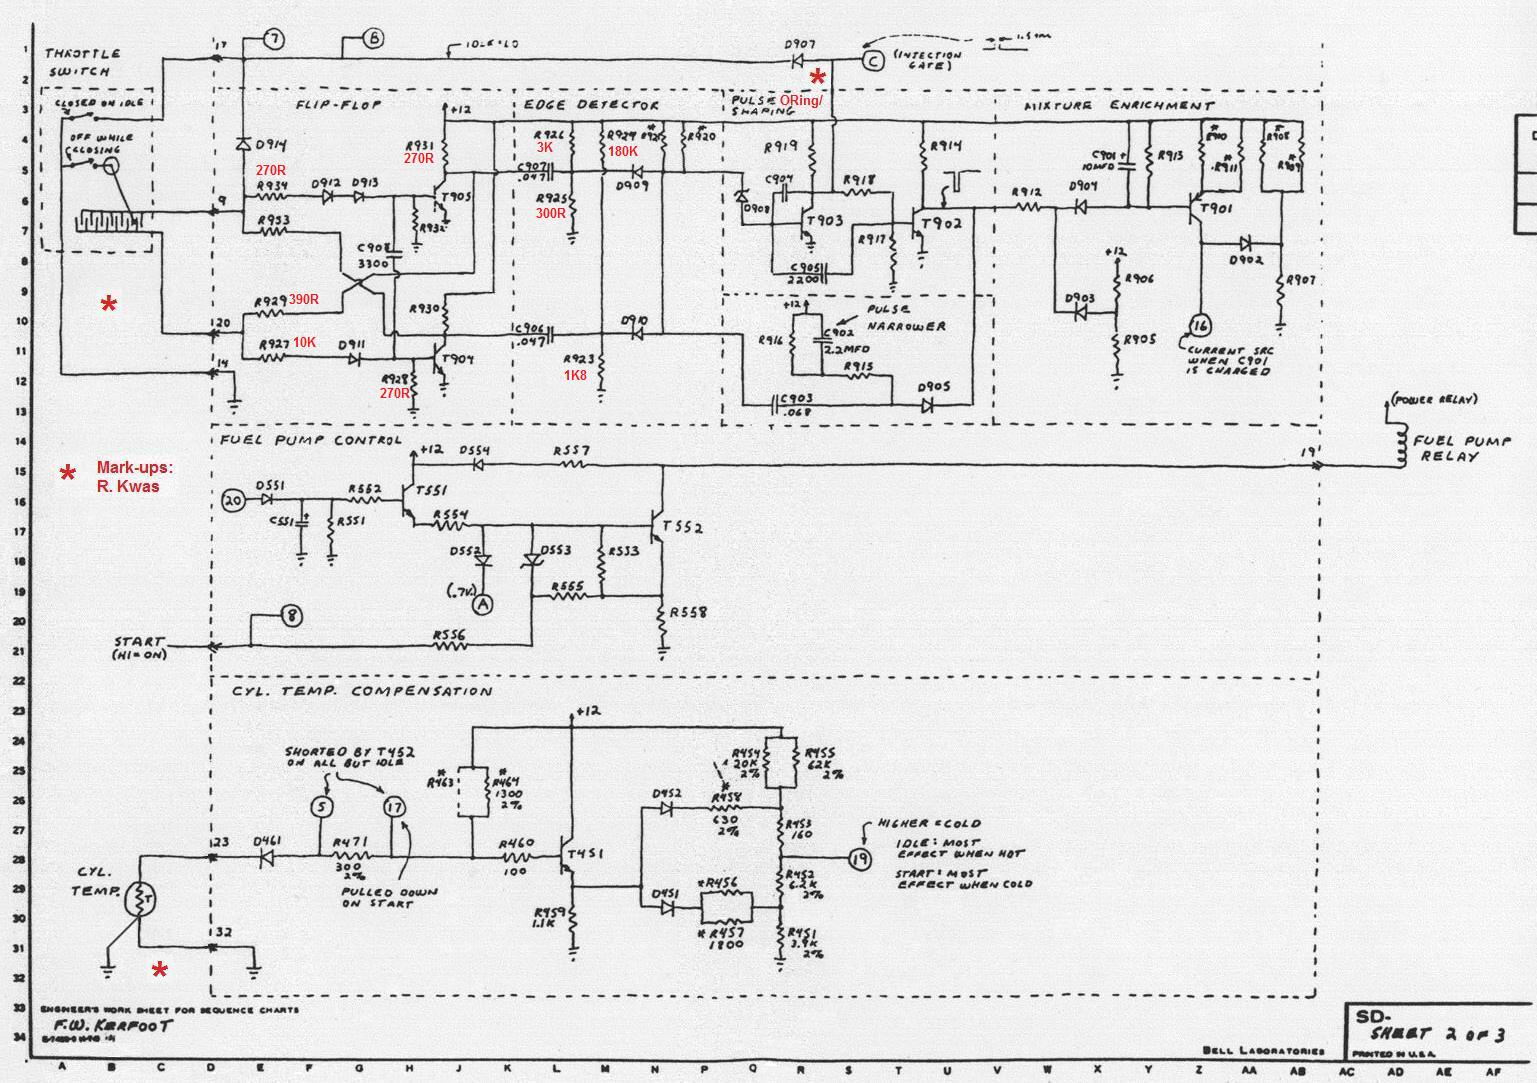 1975 porsche 911 fuel pump wiring diagram nissan 240sx